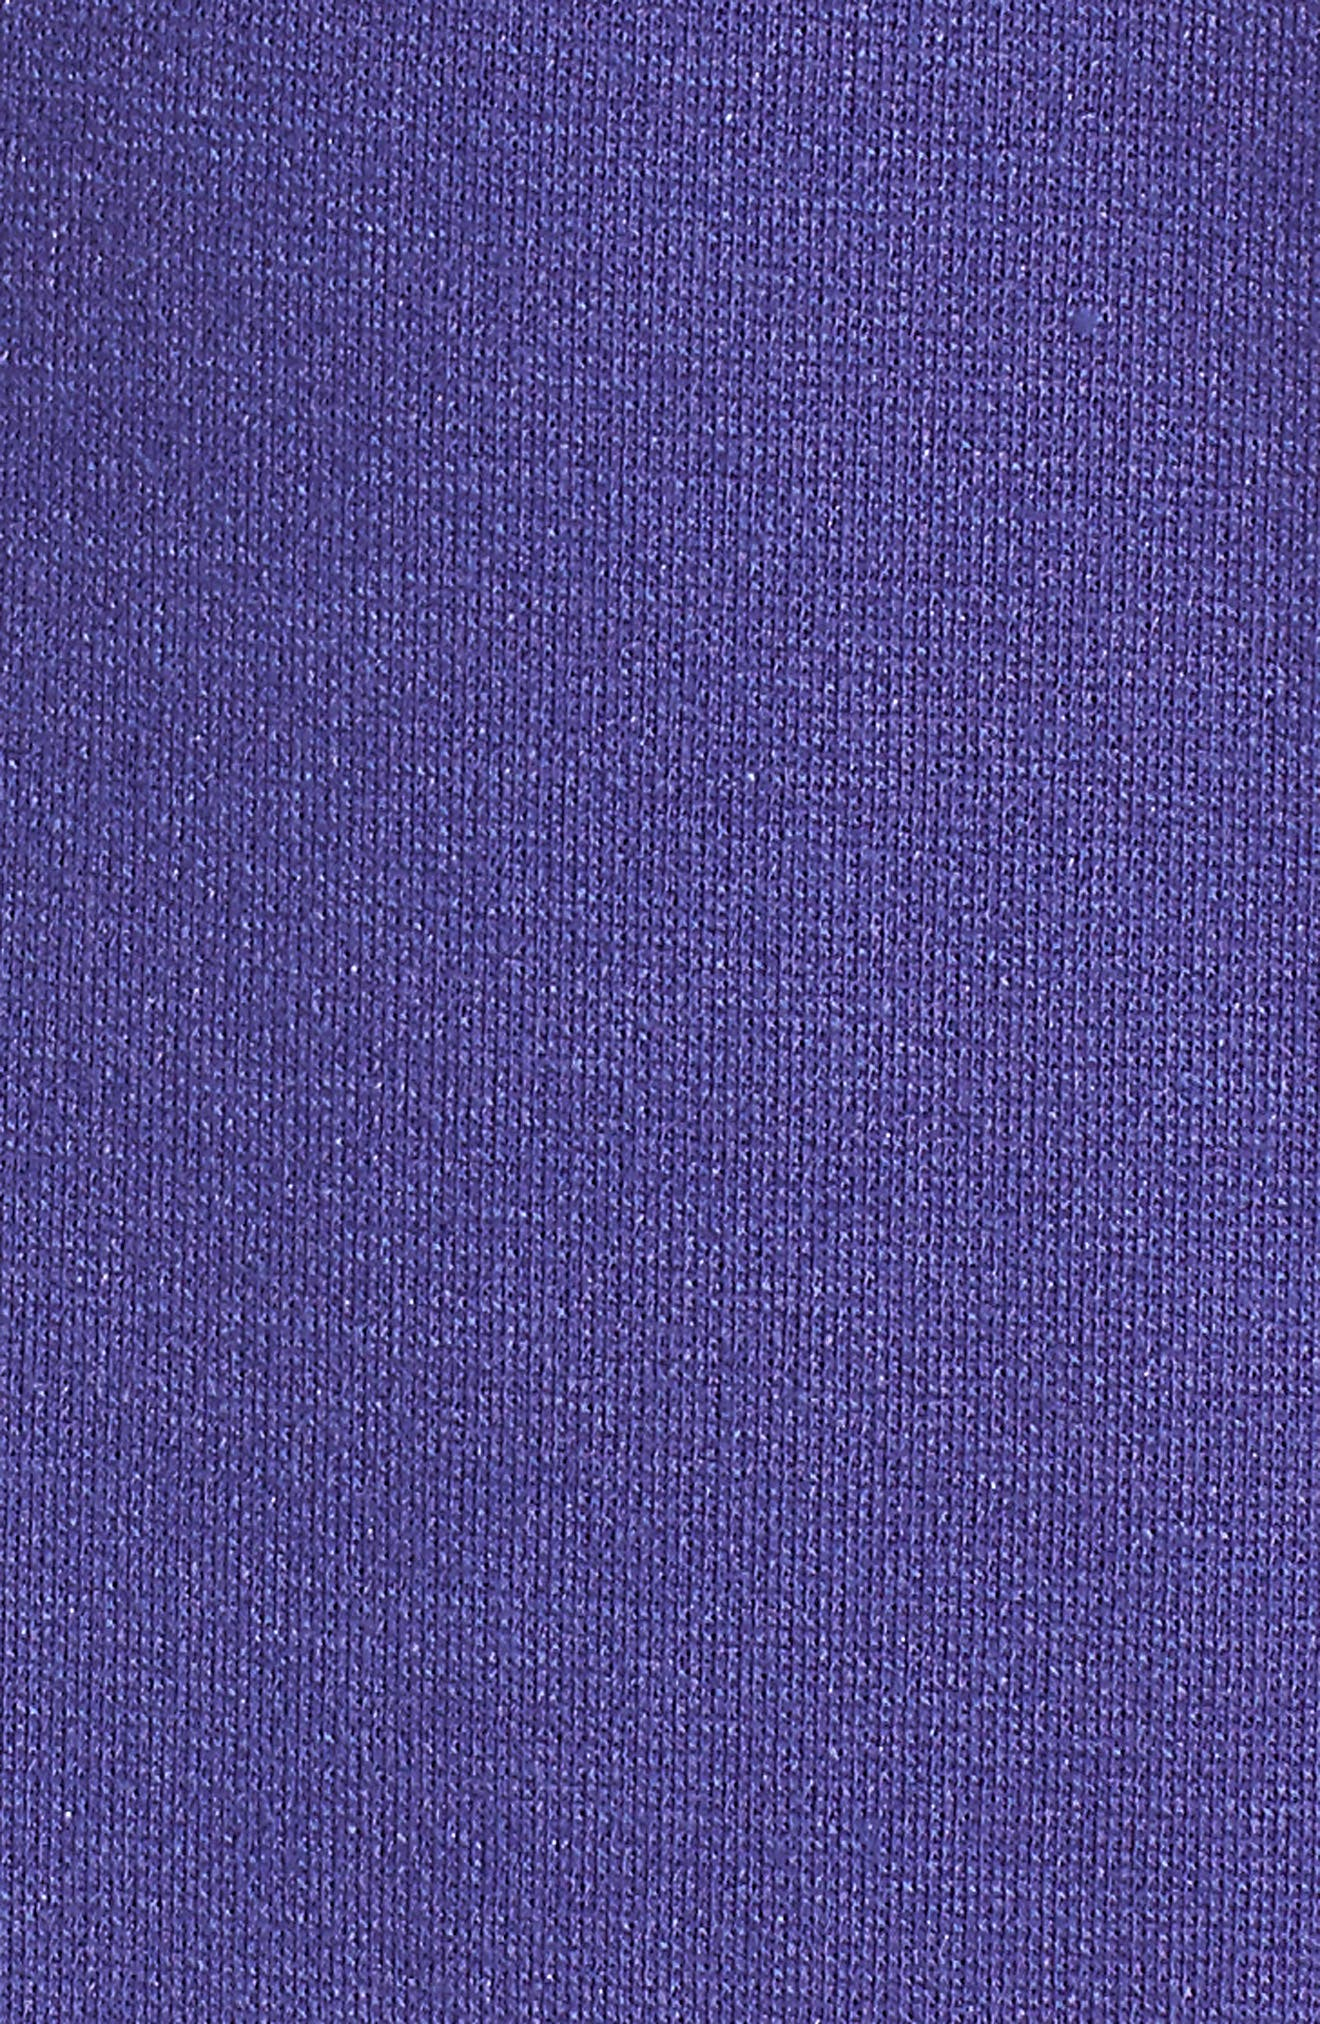 V-Neck Tee,                             Alternate thumbnail 6, color,                             Purple Orient